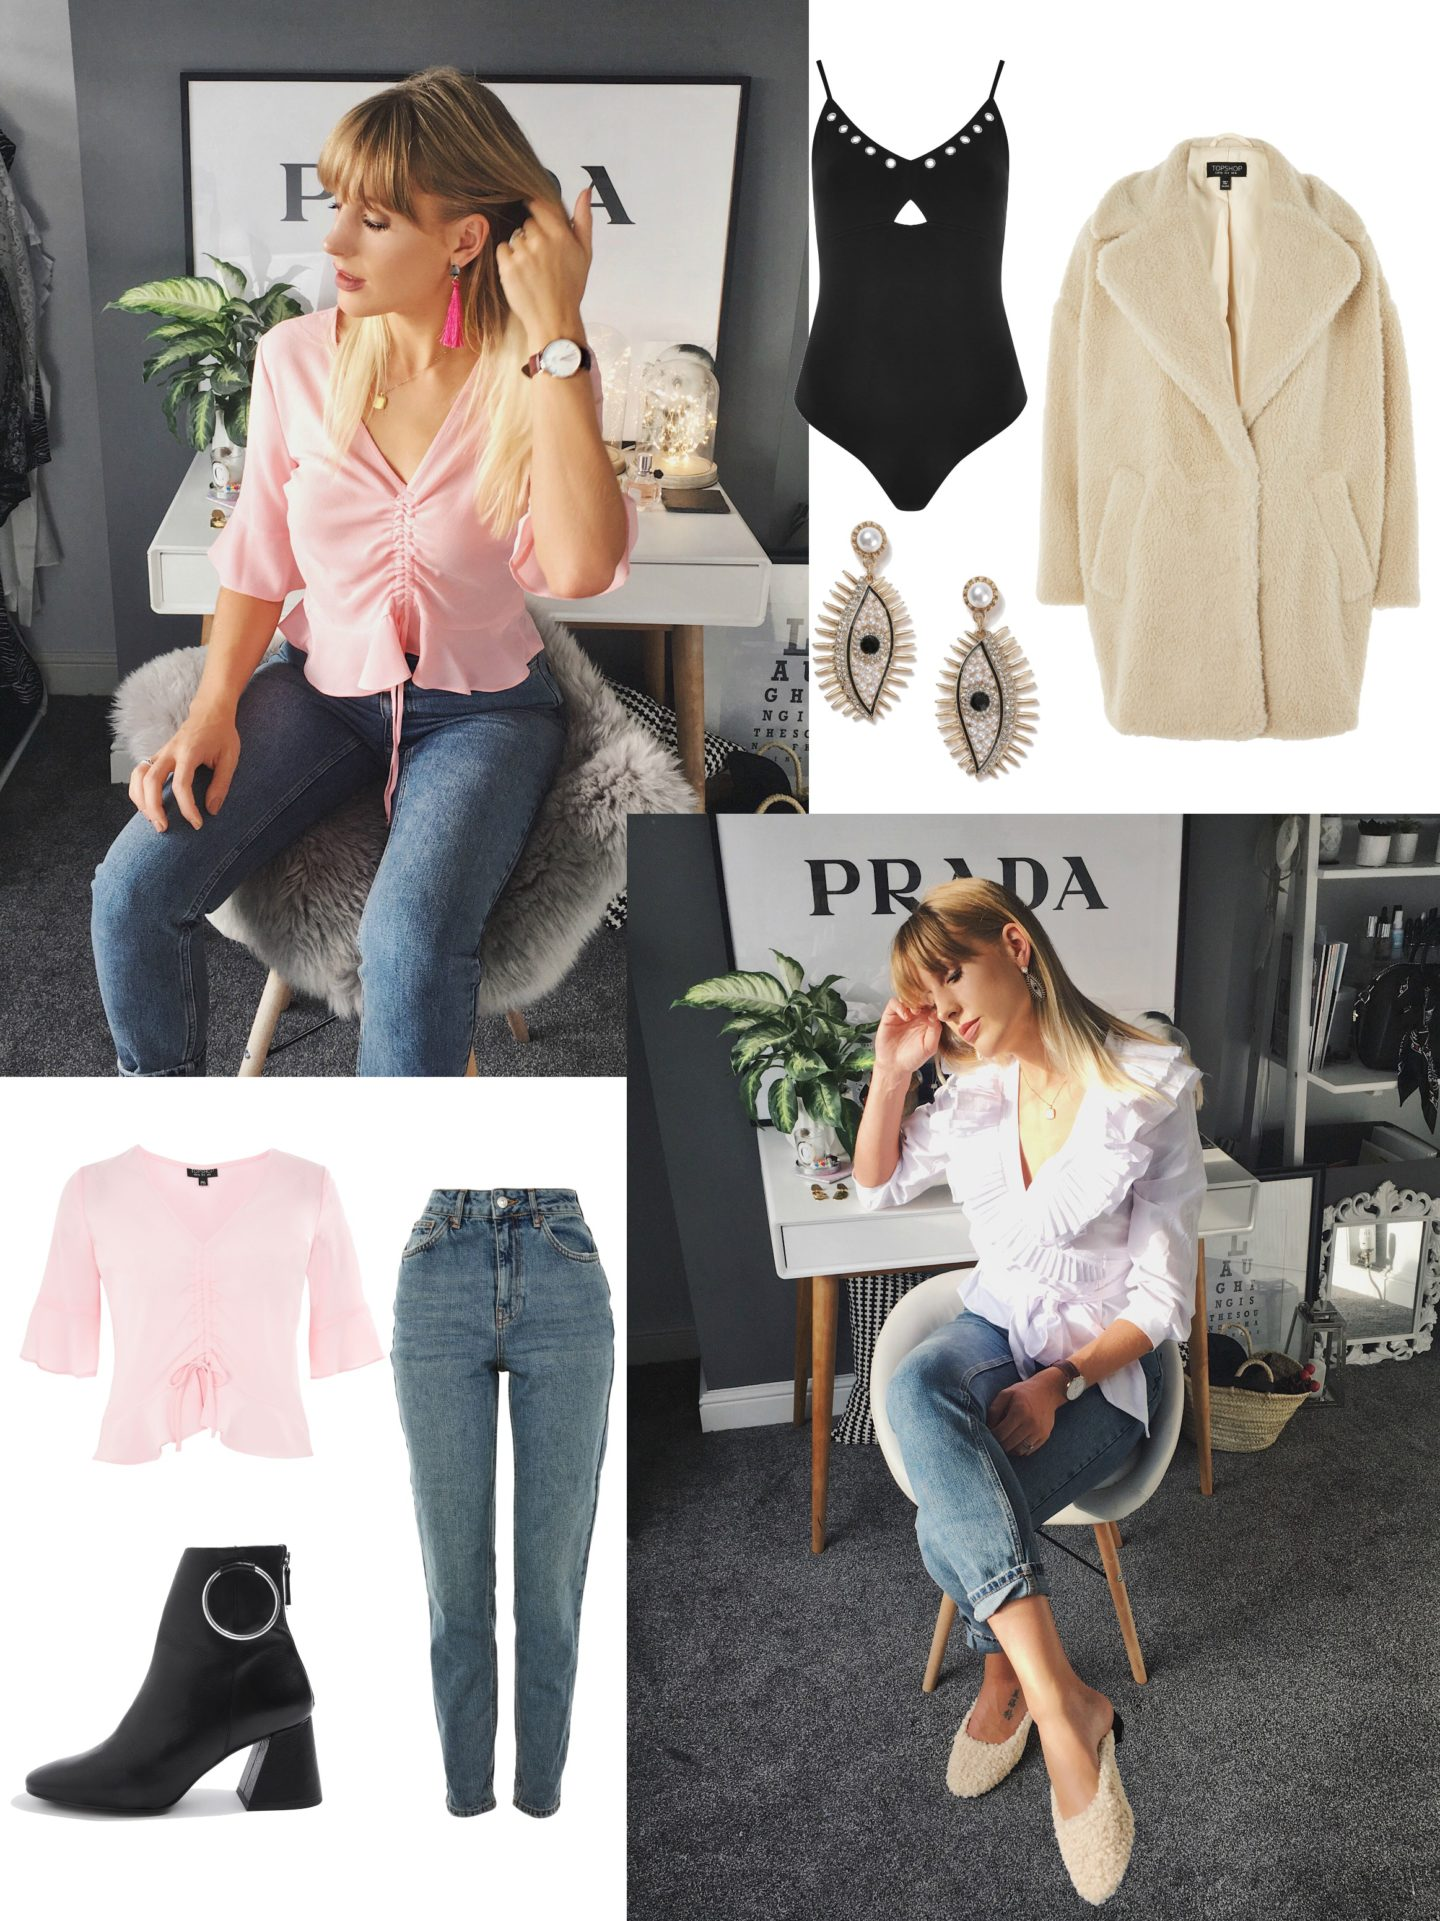 TOPSHOP AUTUMN NEW IN MUST HAVES